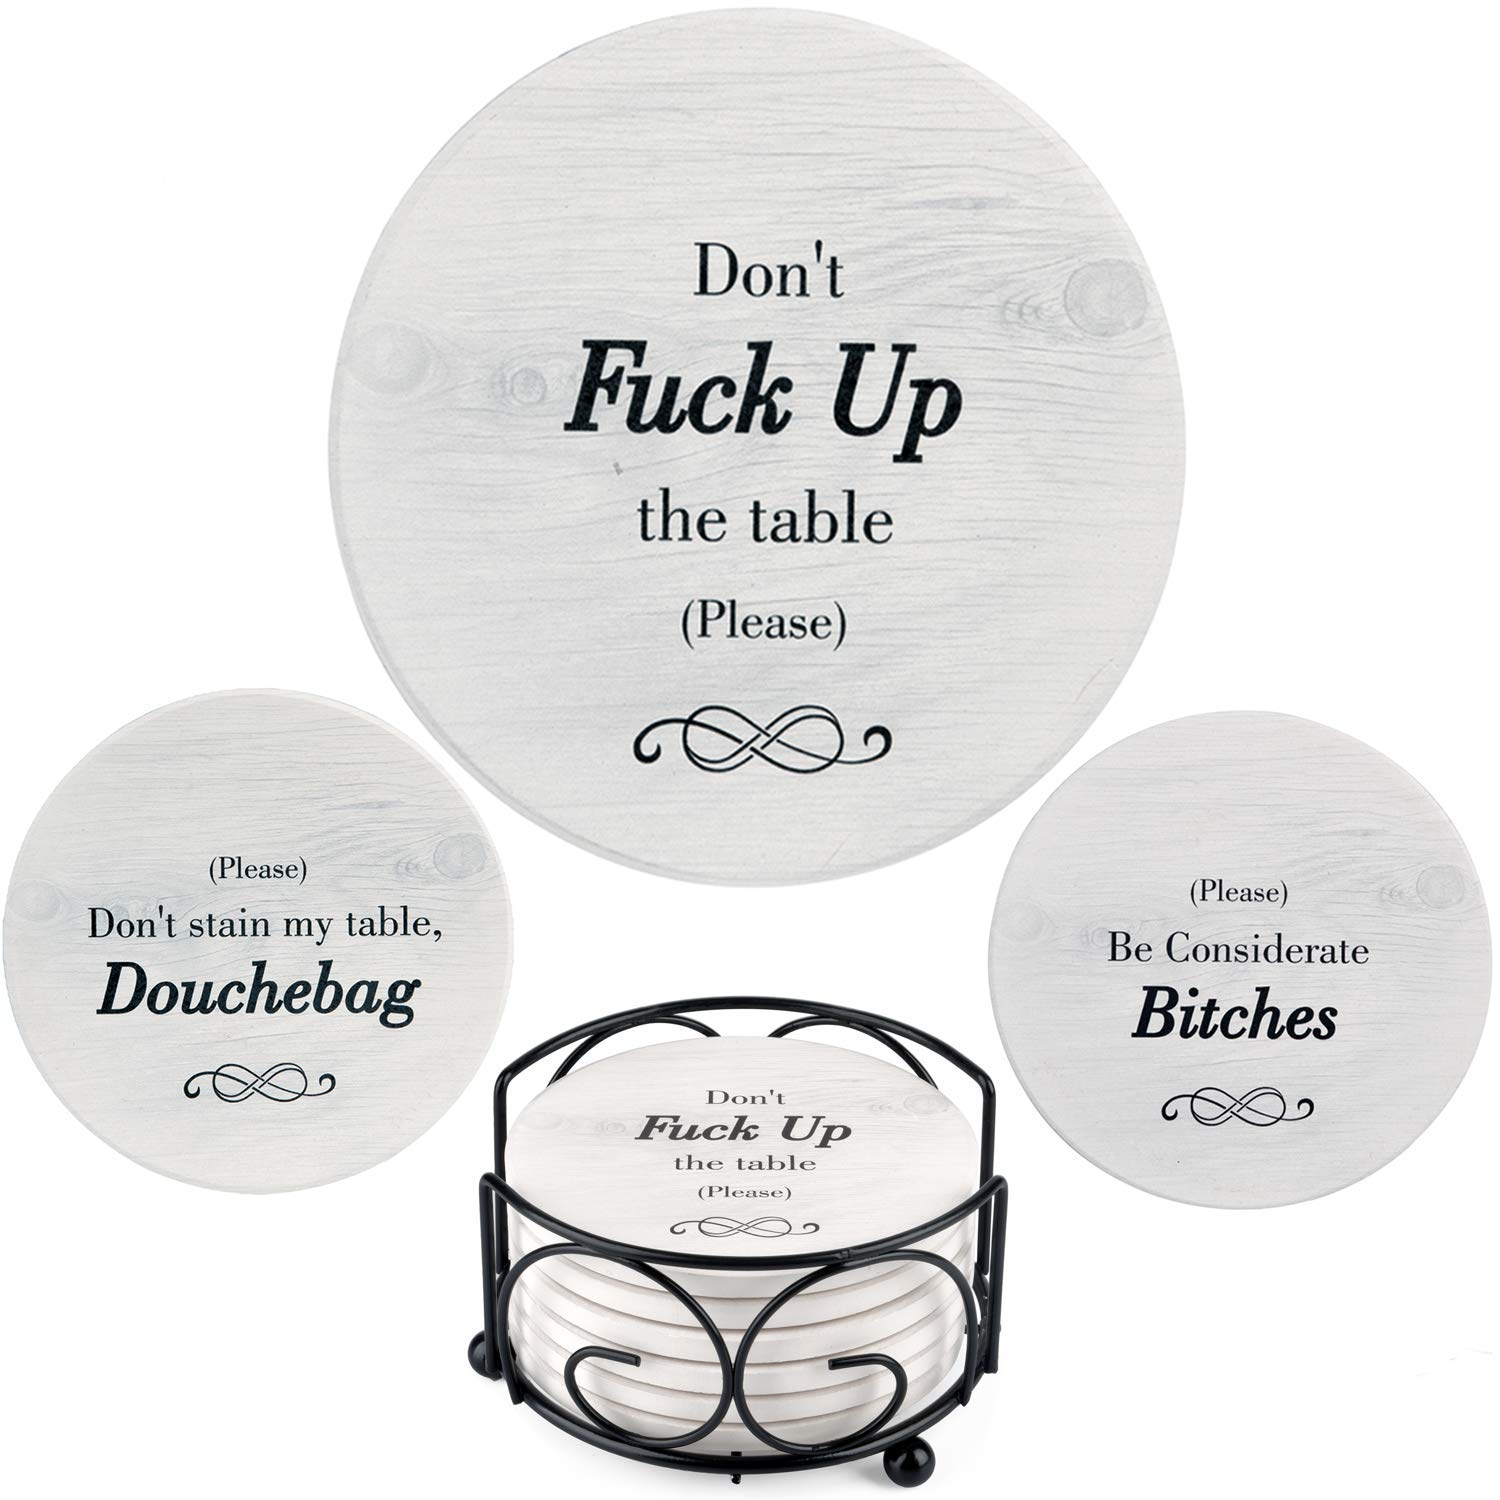 Funny Coasters for Drinks Absorbent with Holder | 6 Pcs Novelty Gift Set | 3 Different Sayings | Unique Present for Friends, Men, Women, Housewarming, Birthday, White Elephant, or Holiday Party